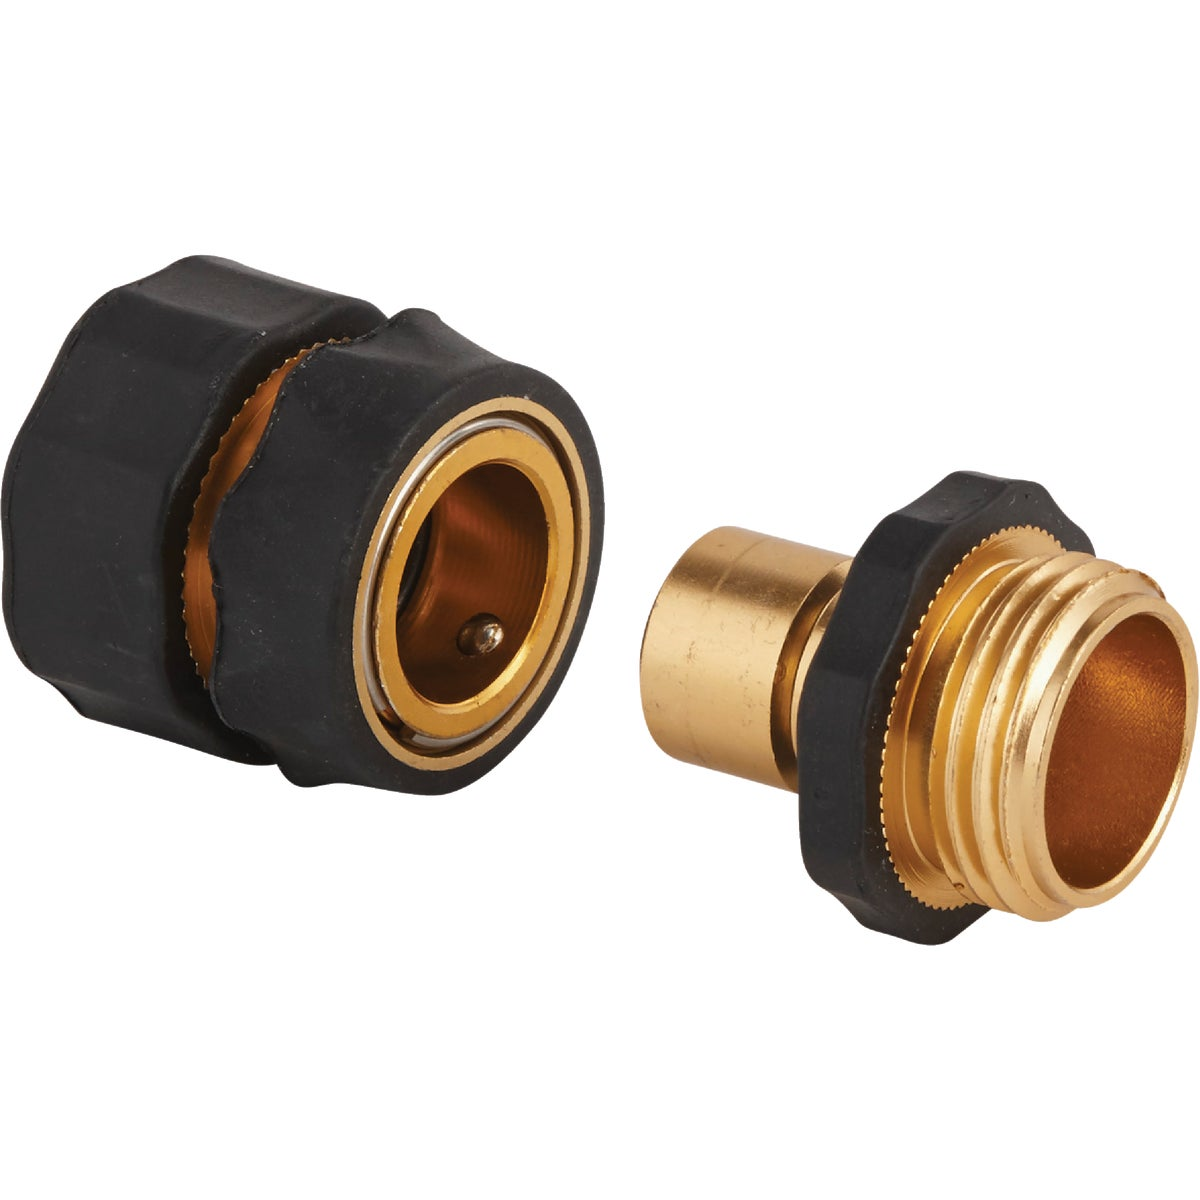 QUICK BRASS COUPLER SET - DIB09QC by Bosch G W Gs